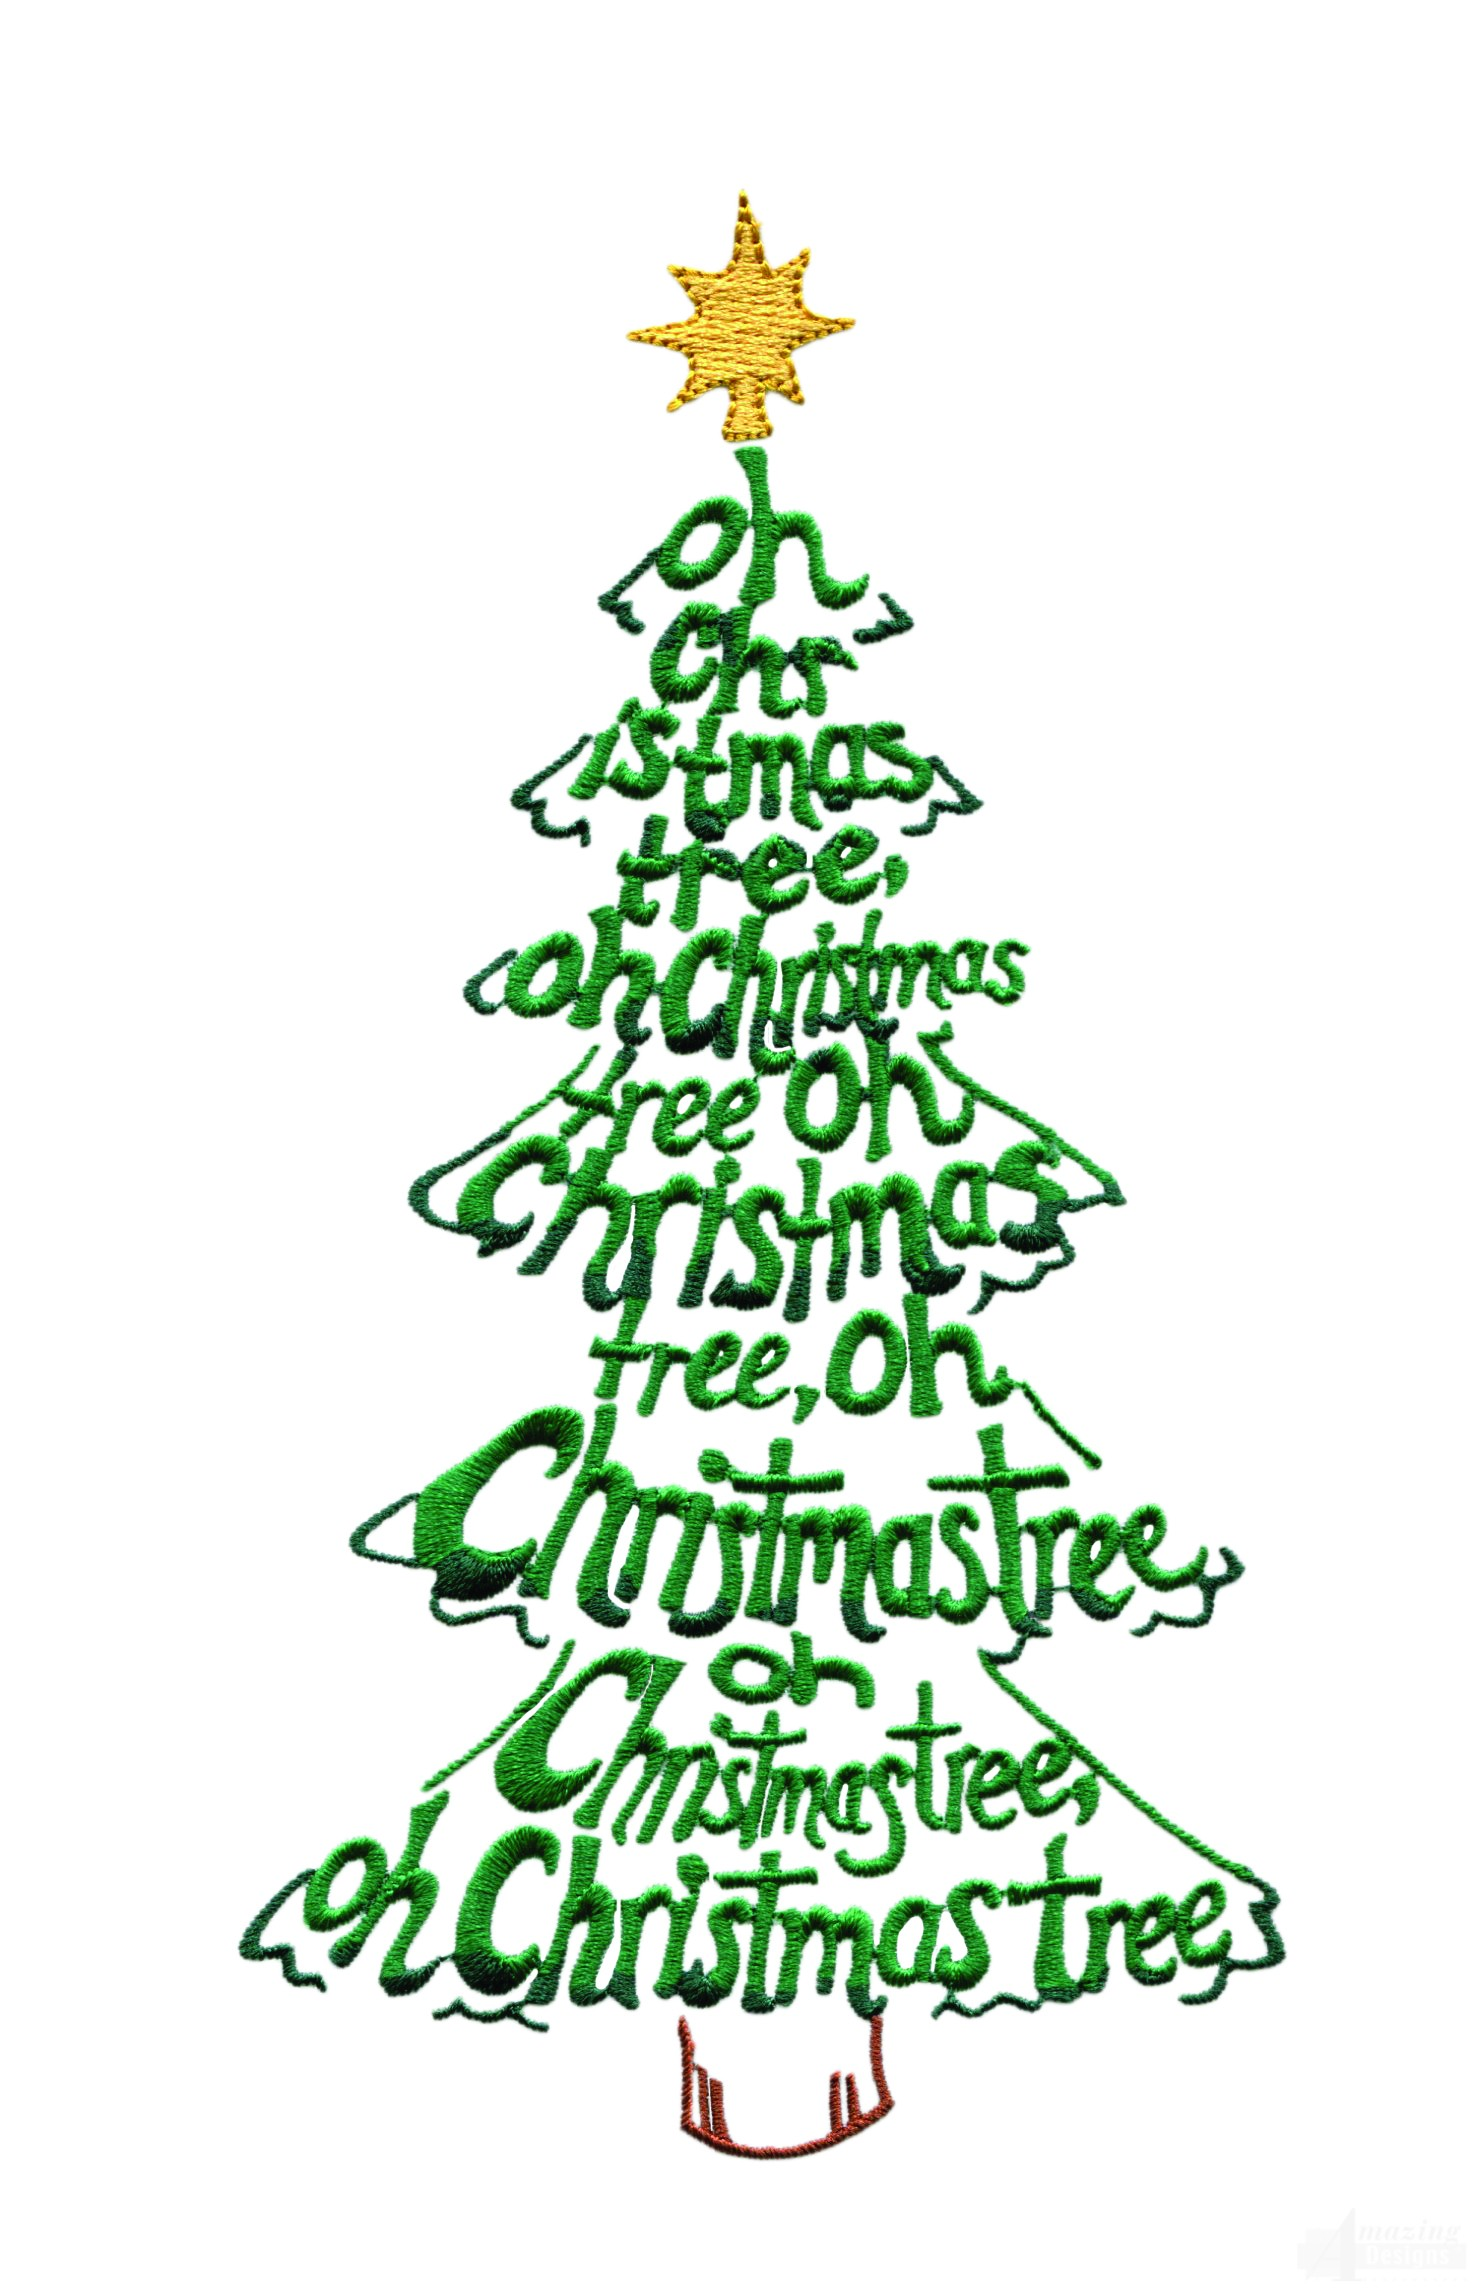 Oh christmas tree tree embroidery design Oh design